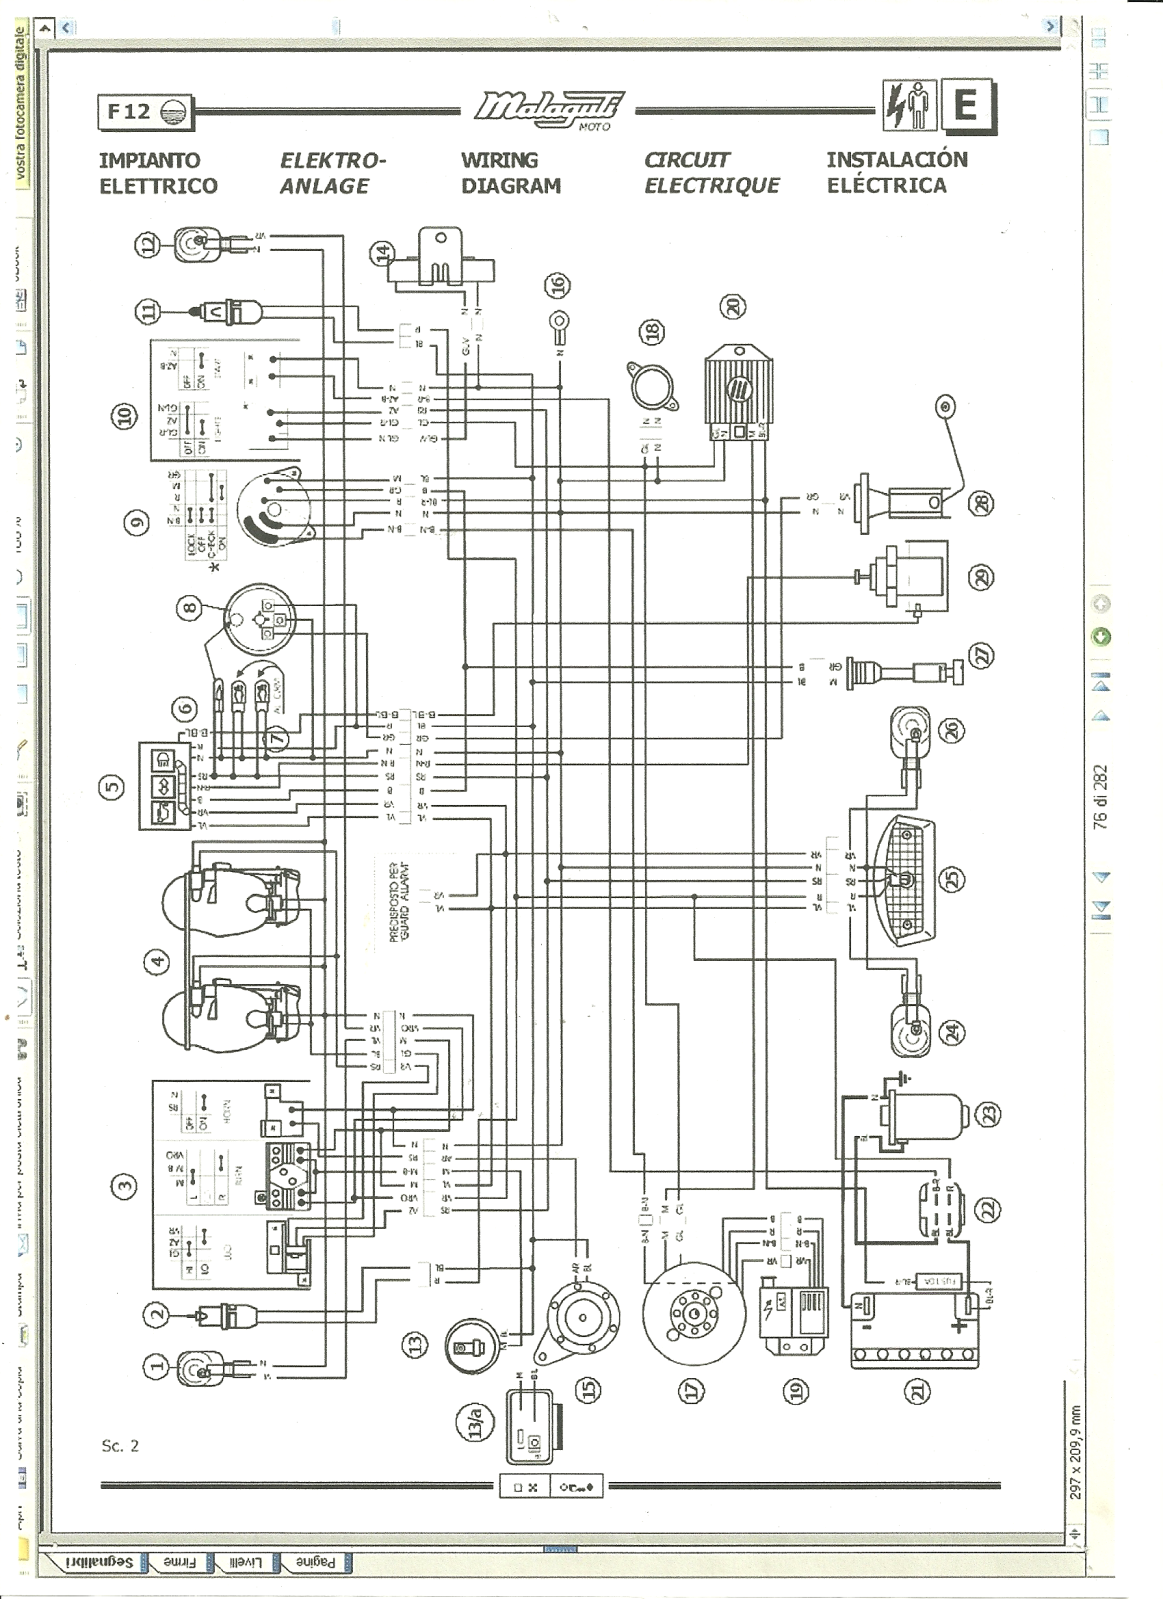 2004 yamaha r6 headlight wiring diagrams yamaha r6